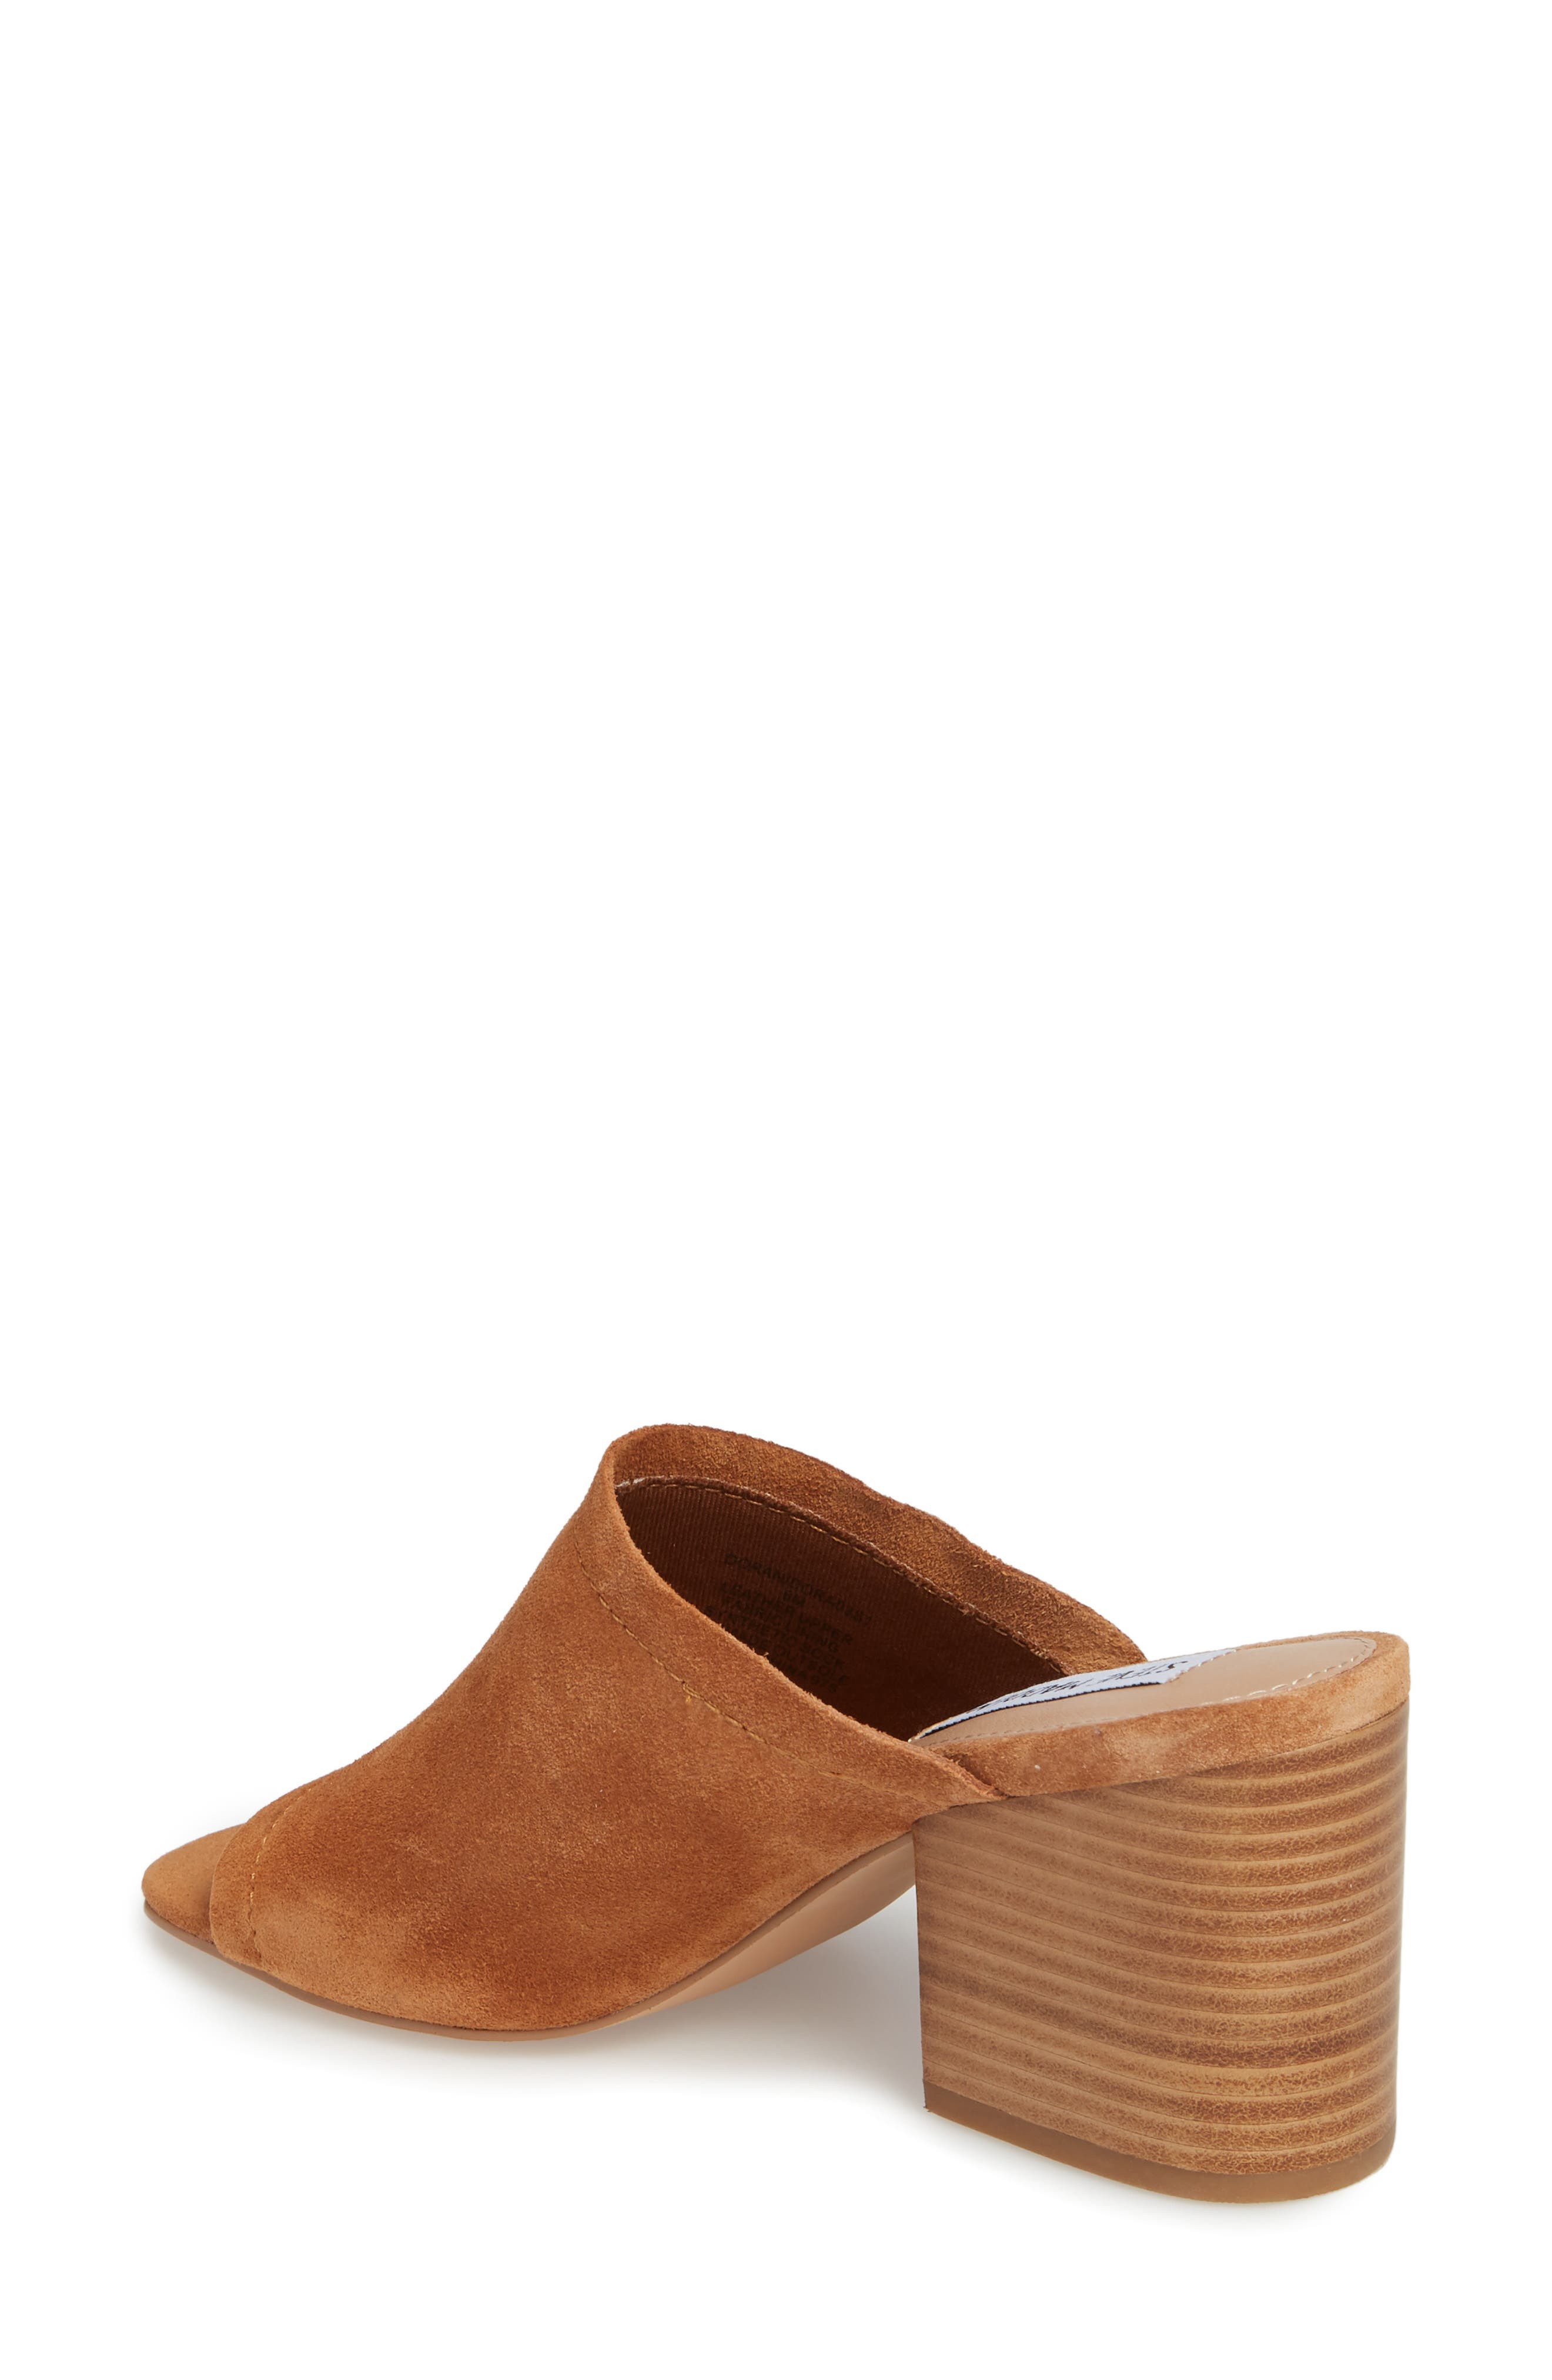 Doran Mule Sandal,                             Alternate thumbnail 2, color,                             CHESTNUT SUEDE